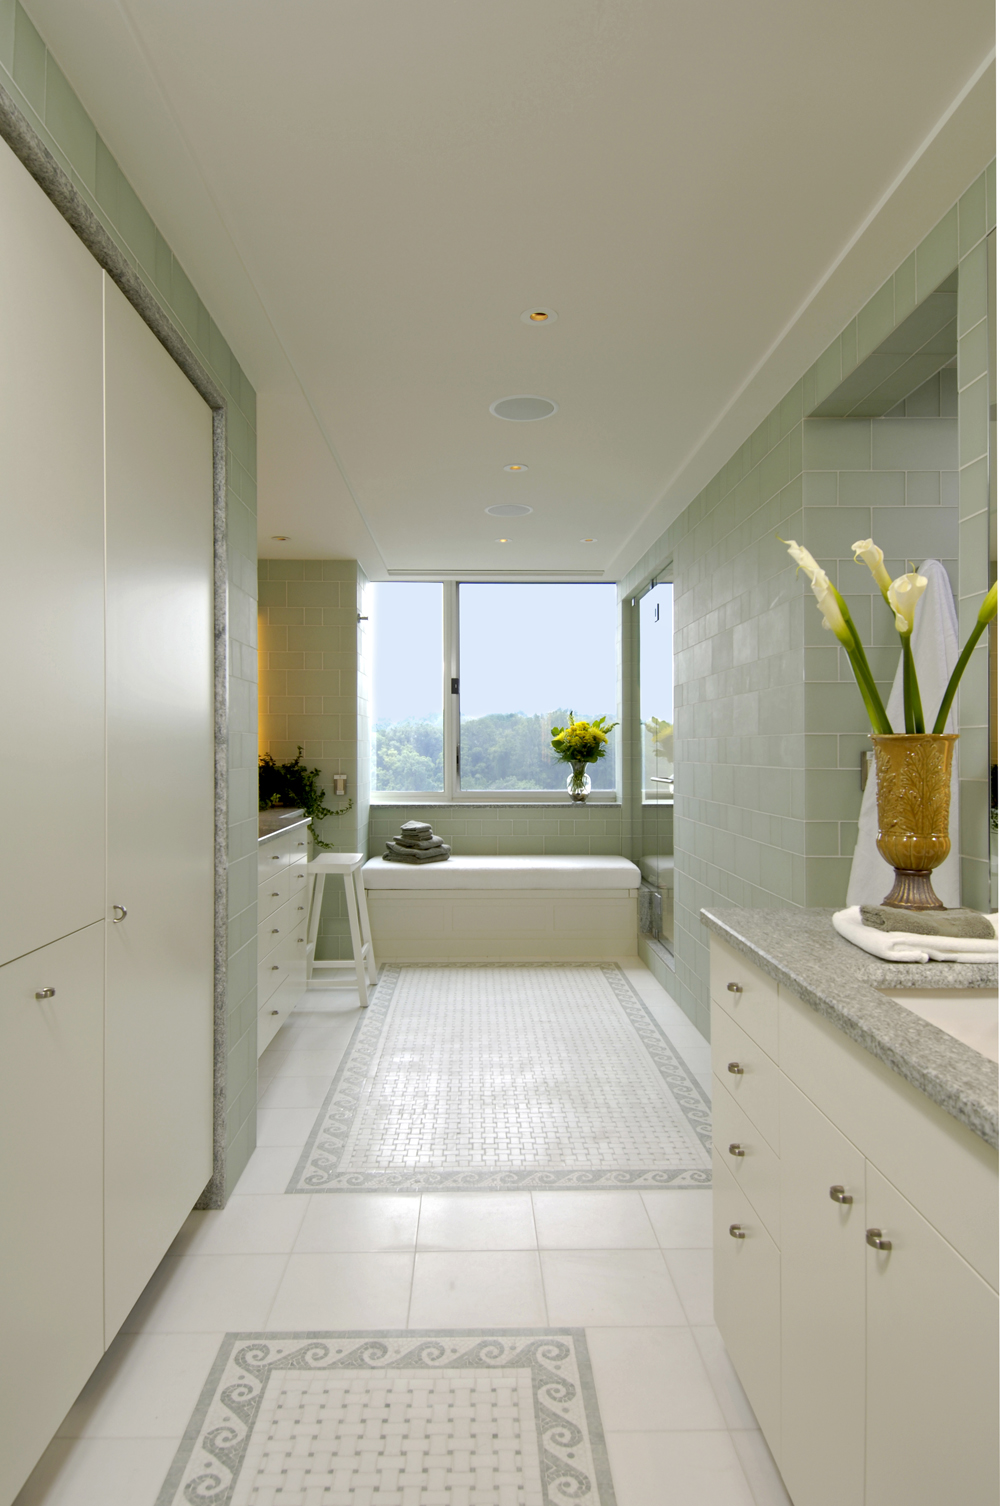 Dc Bathroom Remodel Awesome Awardwinning Condominium Penthouse Renovation In Washington D.c. Design Ideas